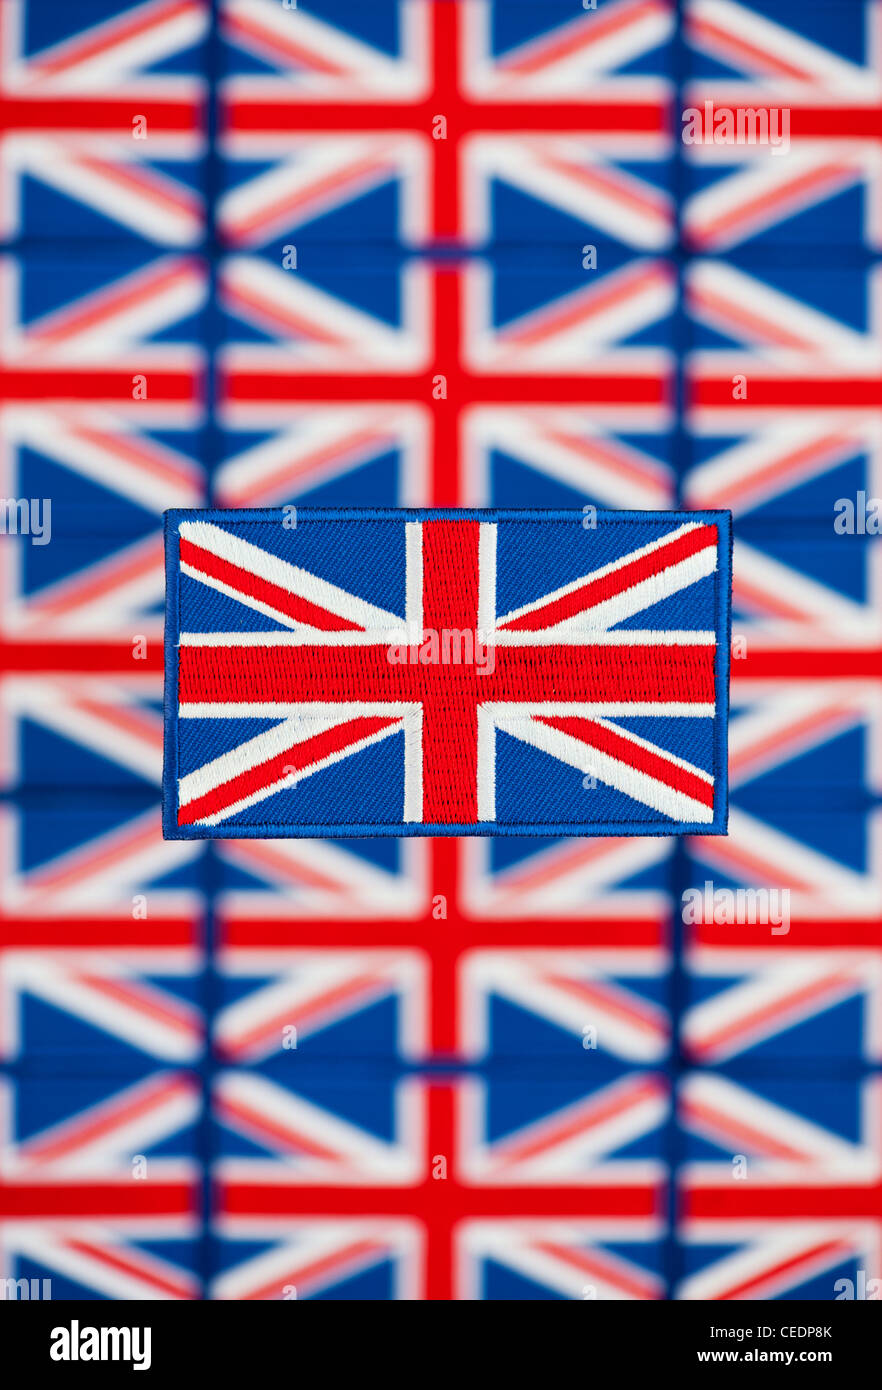 Fantastisch Union Jack Flagge Vorlage Galerie - Entry Level Resume ...